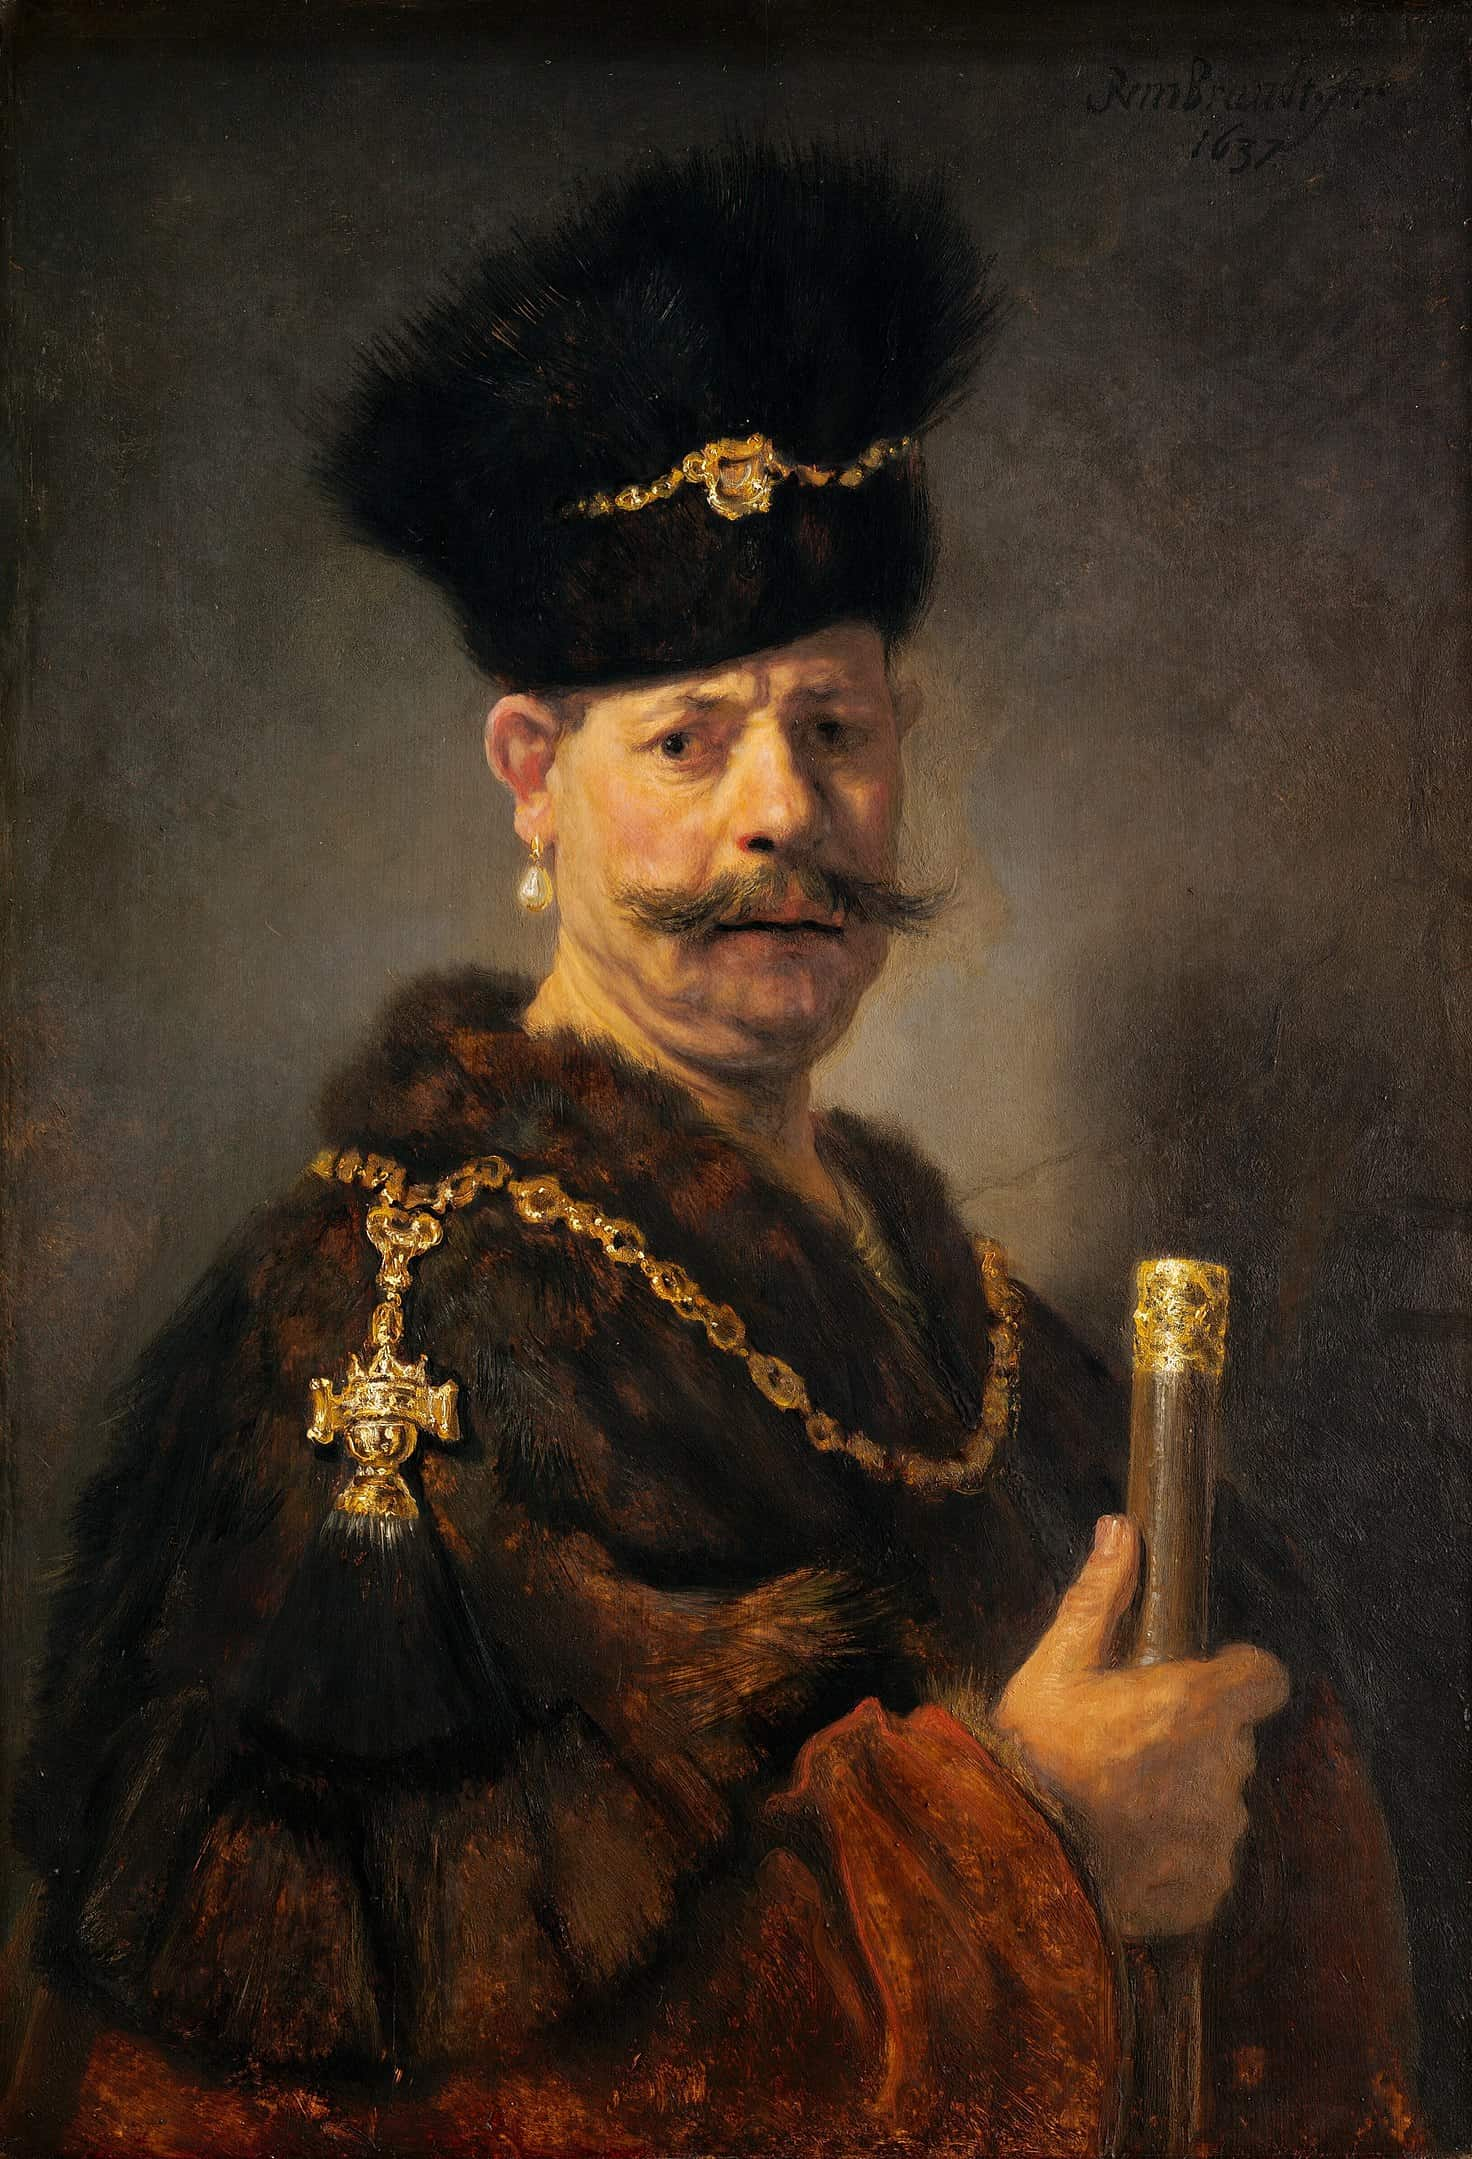 Rembrandt lighting in his portraits